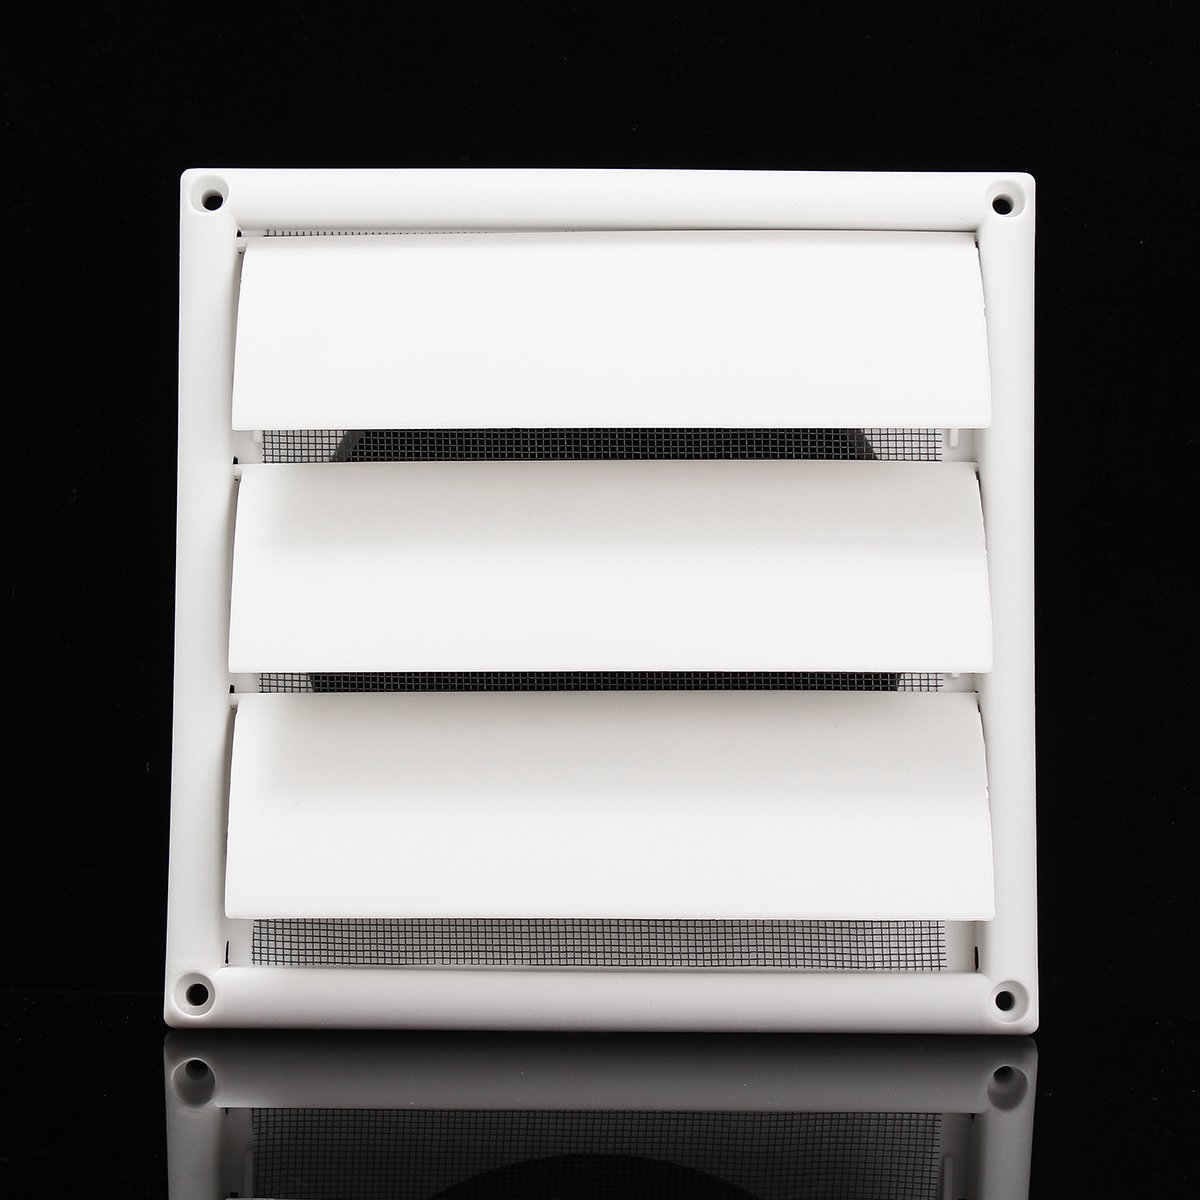 Air Ventilator Wall : Air vent grille ventilation cover plastic white wall